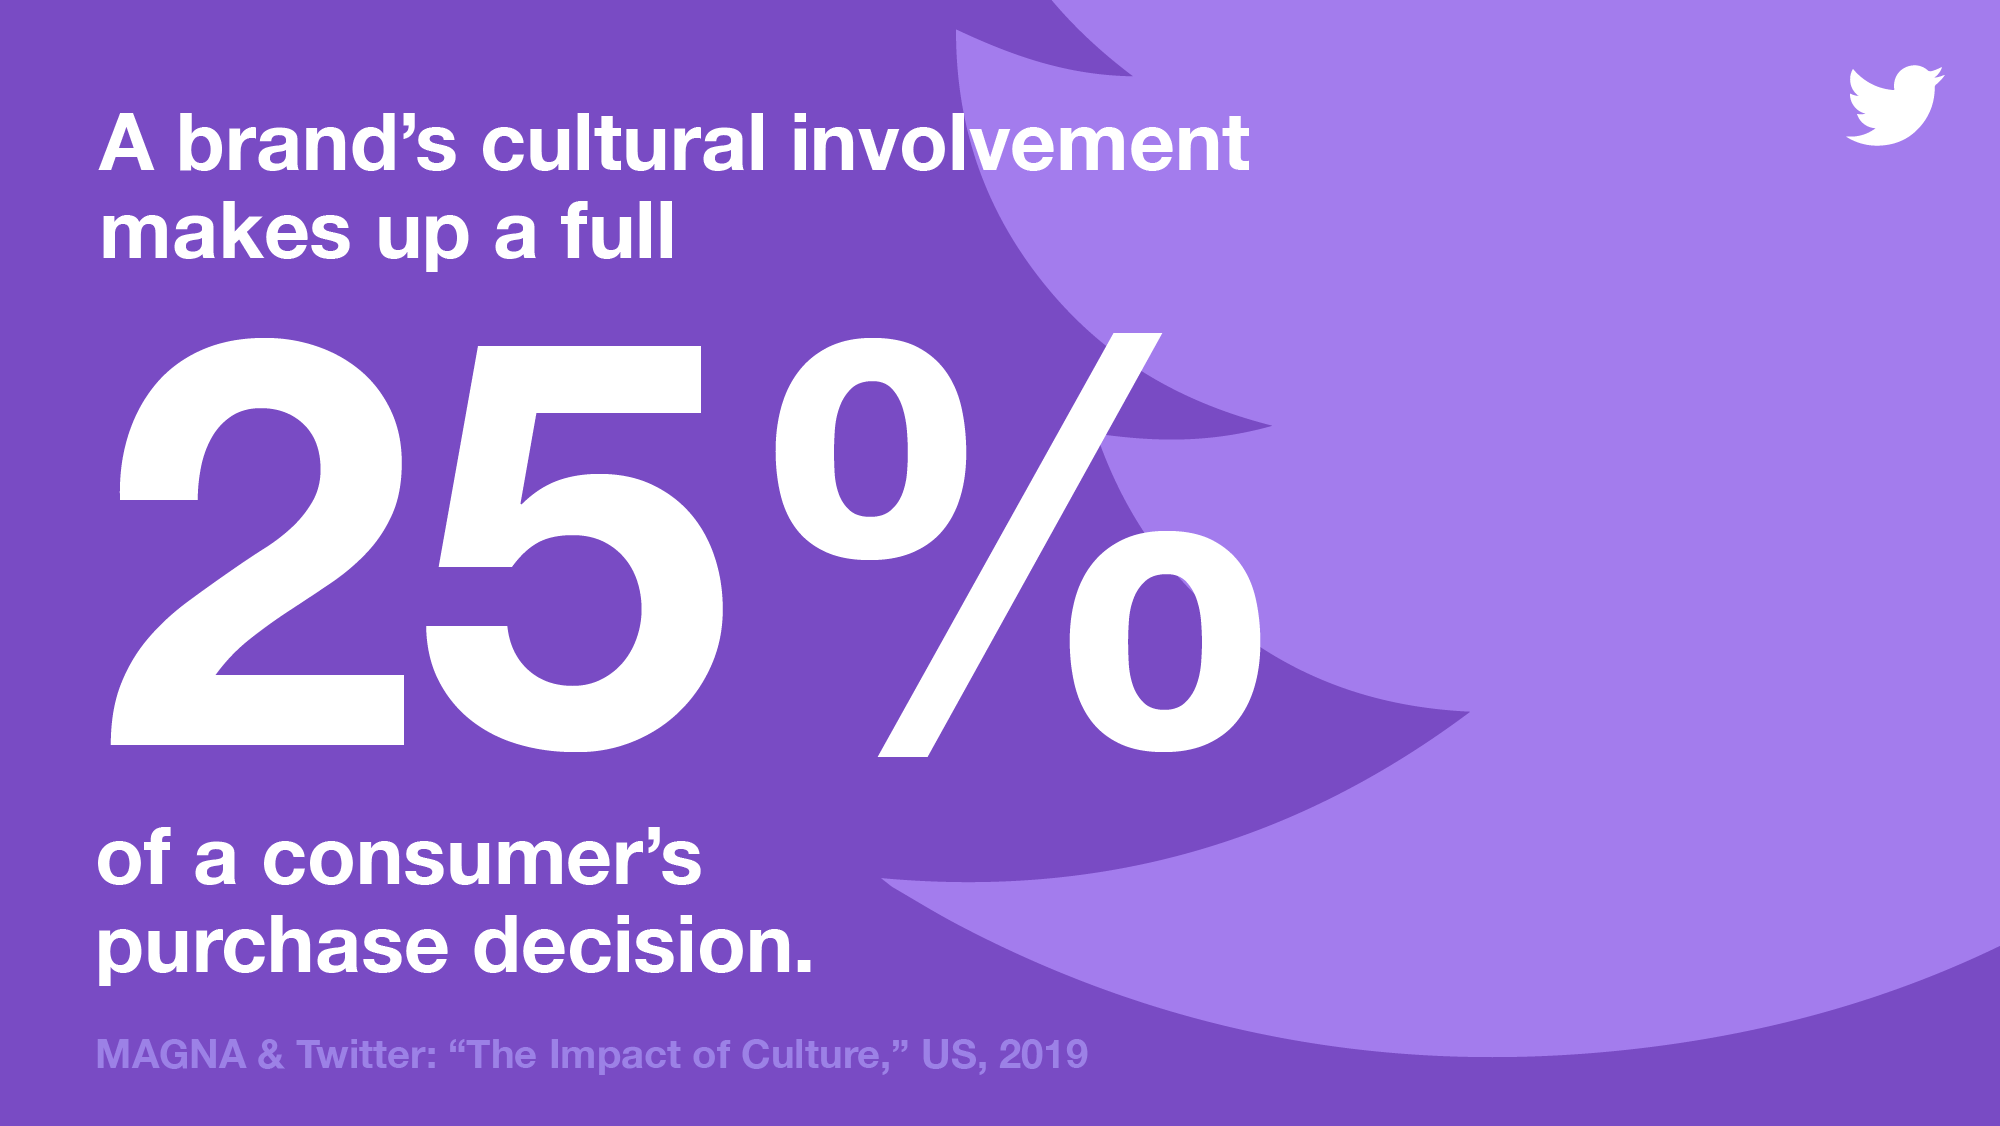 Infographic showing how a brand's cultural involvement makes up a full 25% of a consumer's purchase decision.